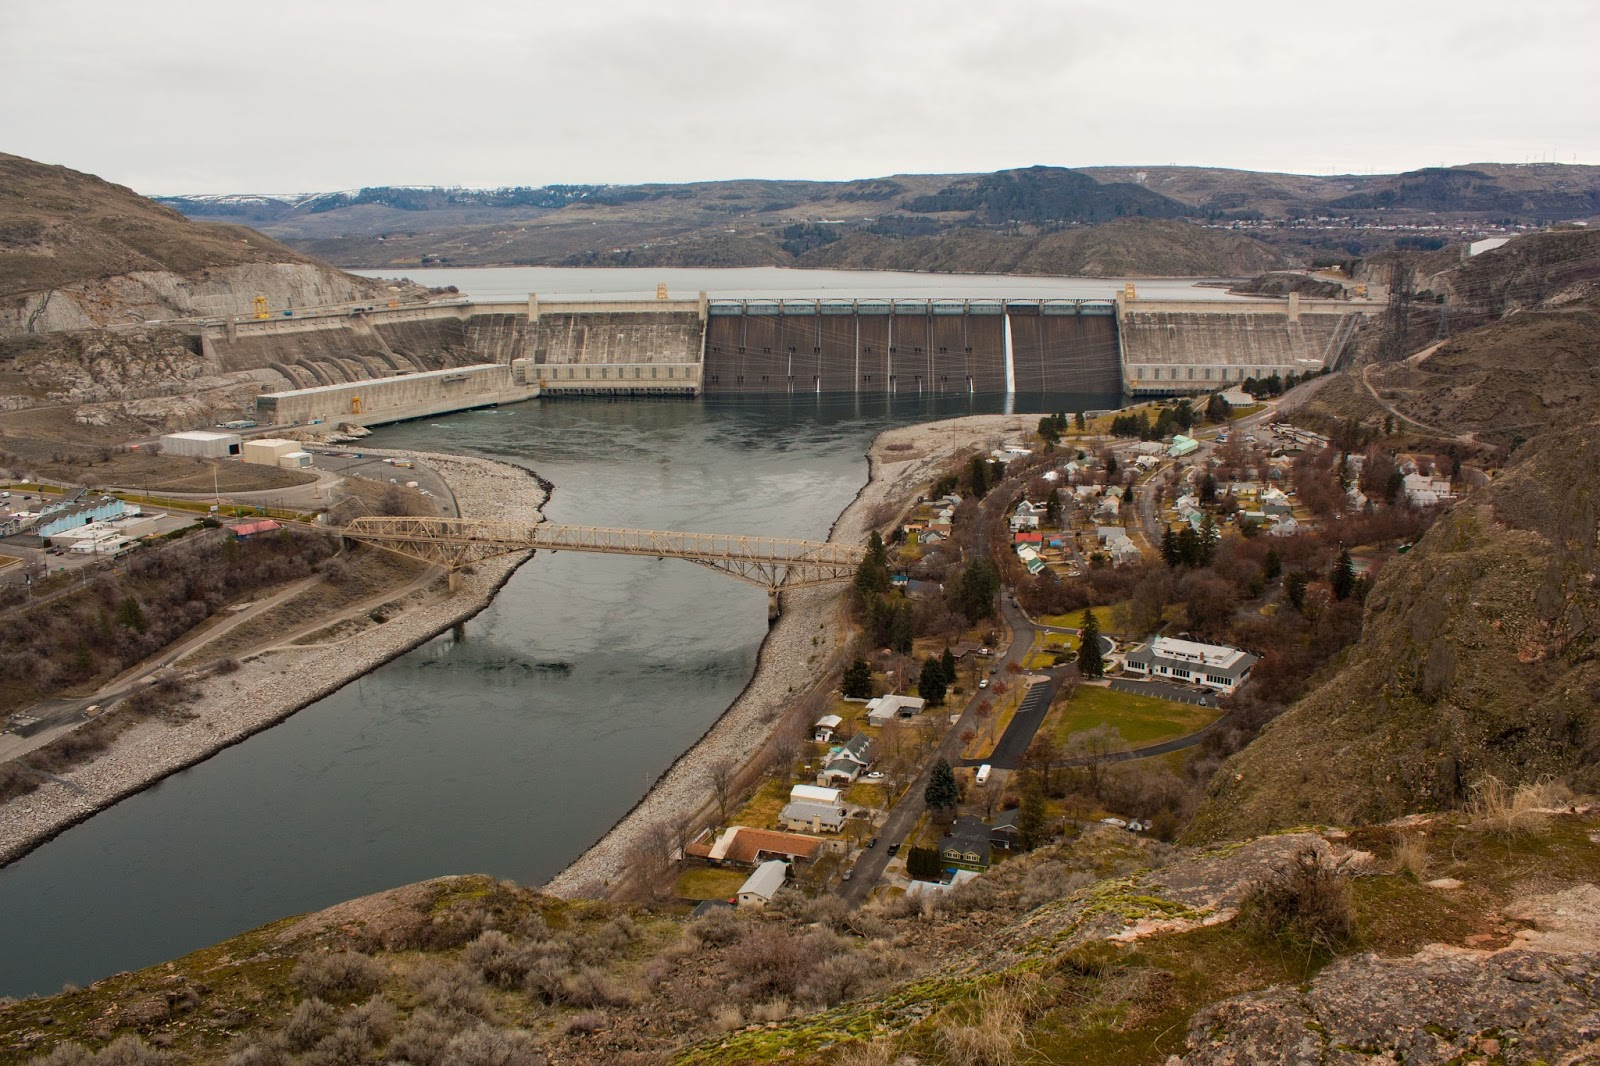 coulee dam Grand coulee dam (ko͞o`lē), 550 ft (168 m) high and 4,173 ft (1,272 m) long, on the columbia river, n central wash, nw of spokane built 1933–42 as a key unit in the columbia.